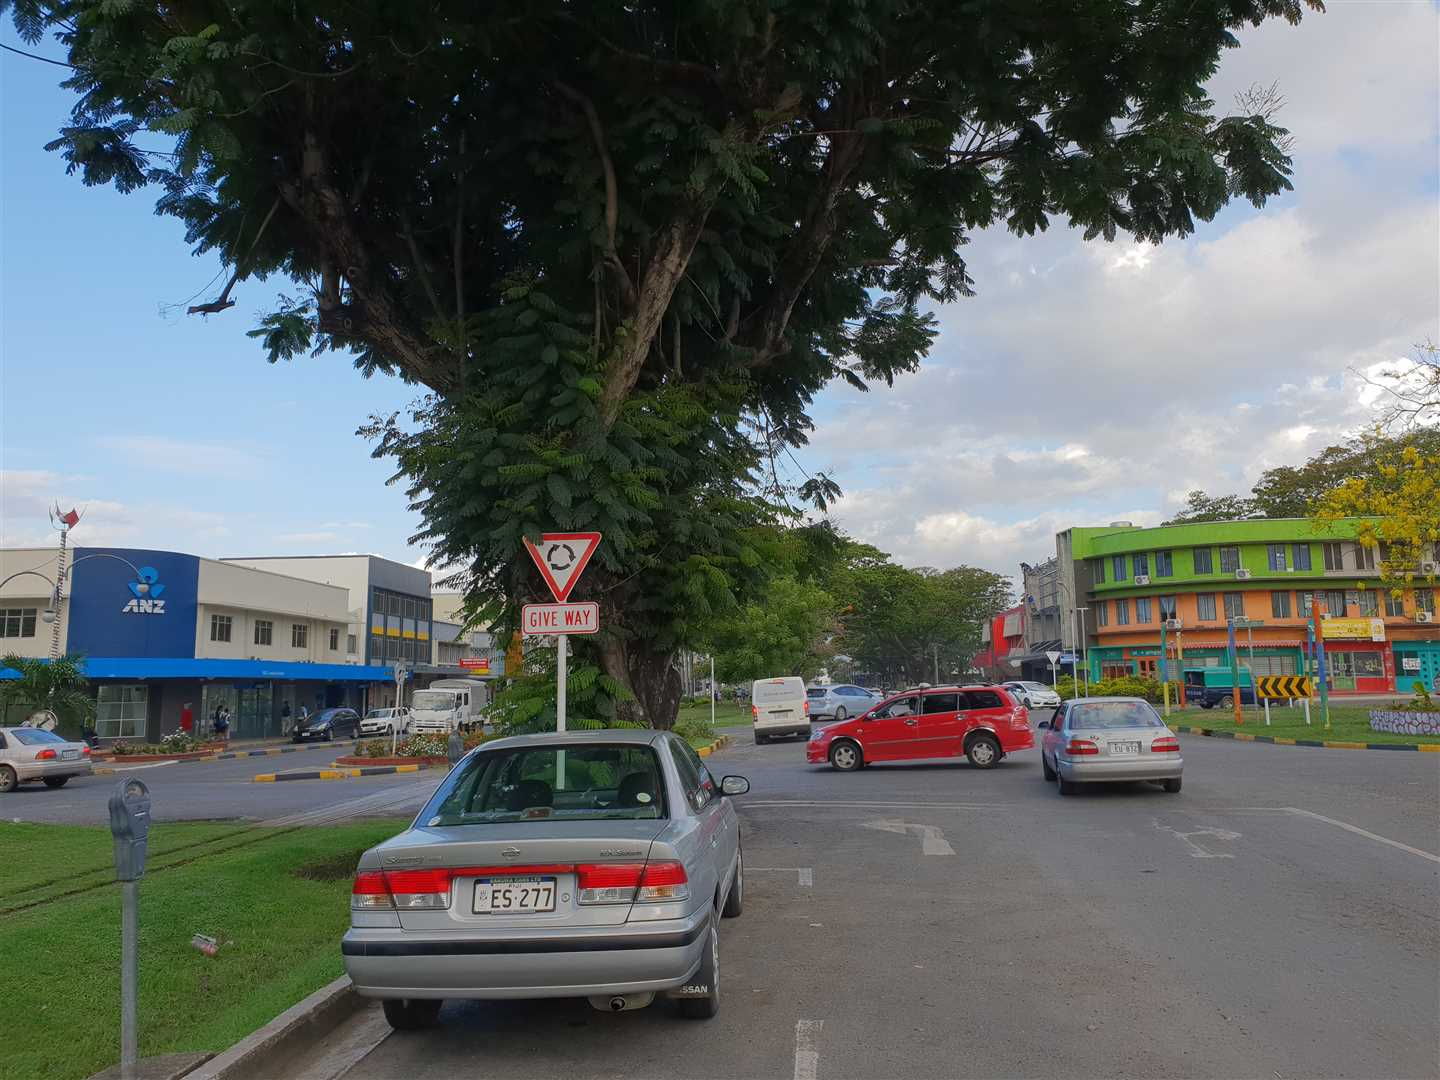 Strategically located opposite ANZ Bank and very close to Tappoo City, Lautoka